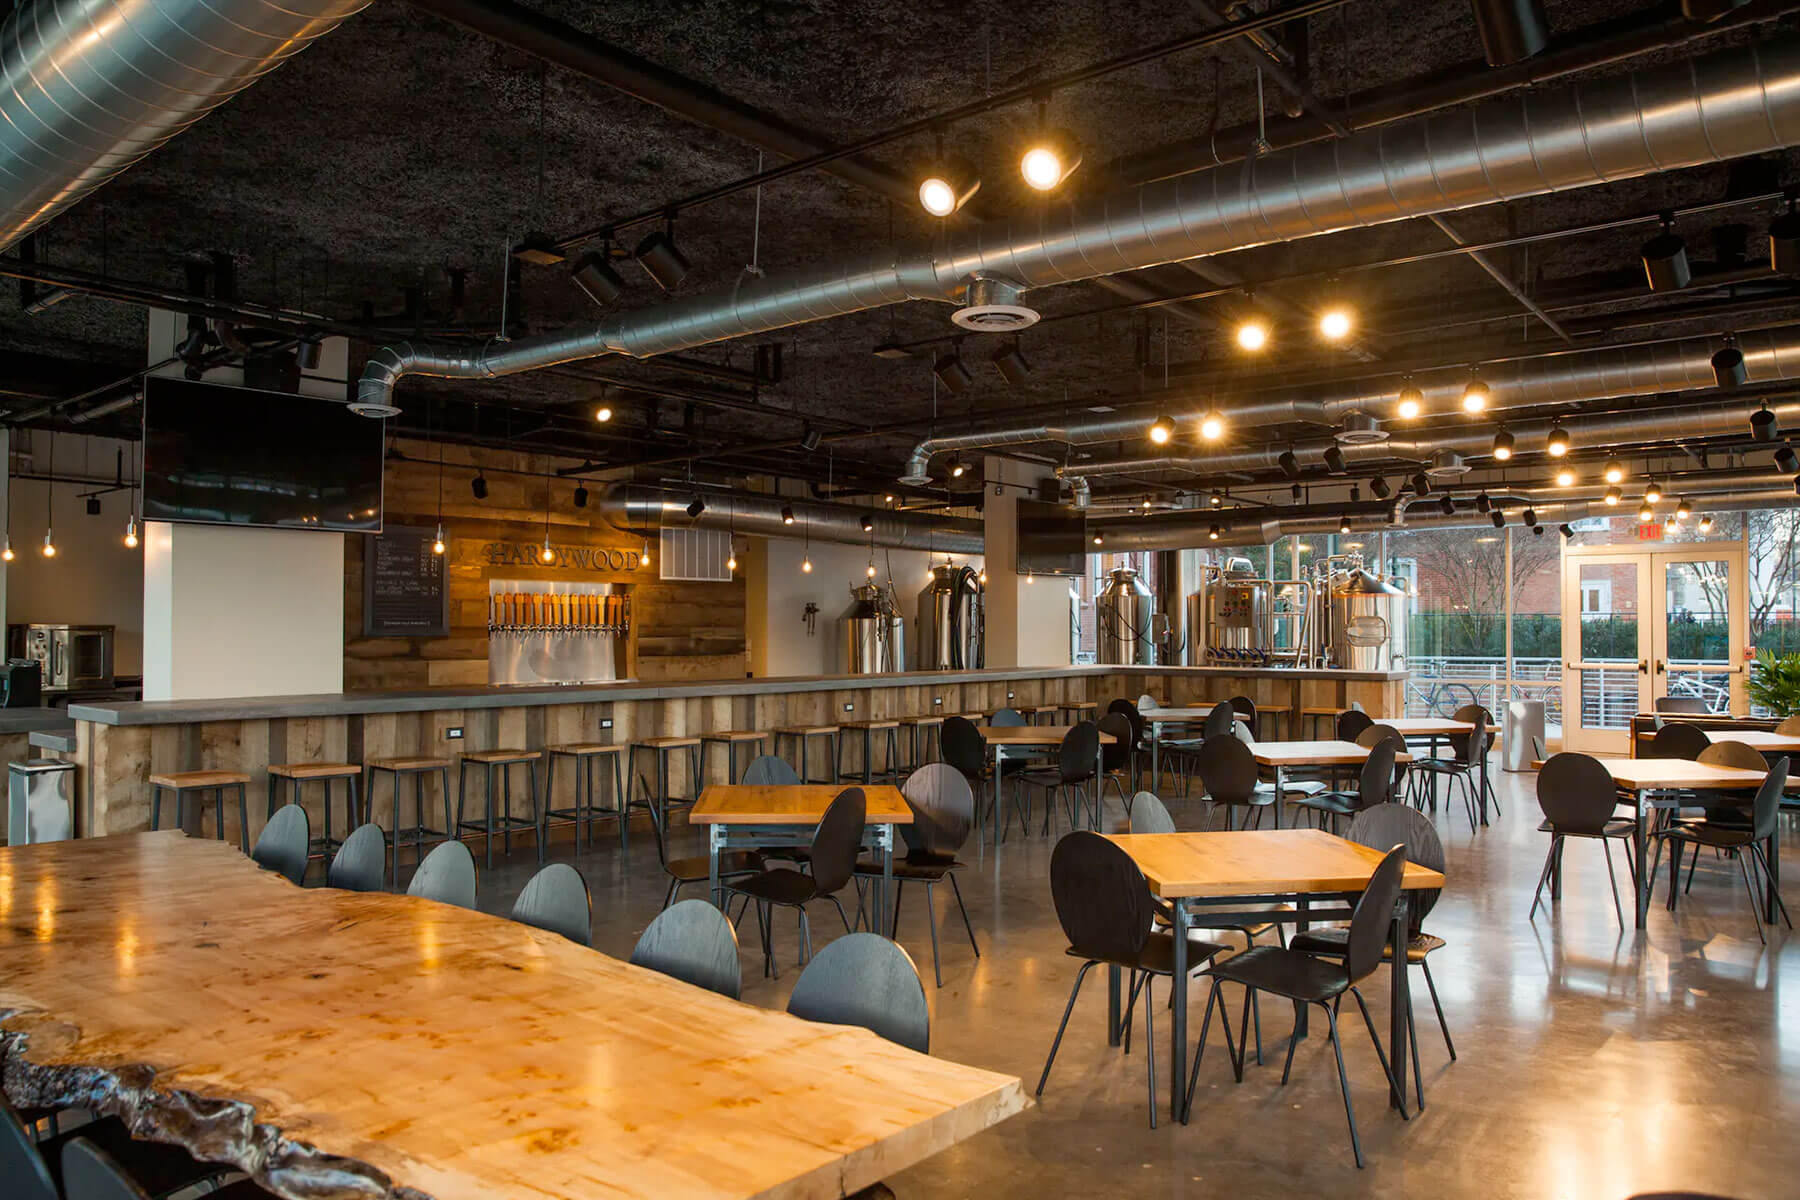 Inside the Hardywood Park Craft Brewery taproom in Charlottesville, Virginia